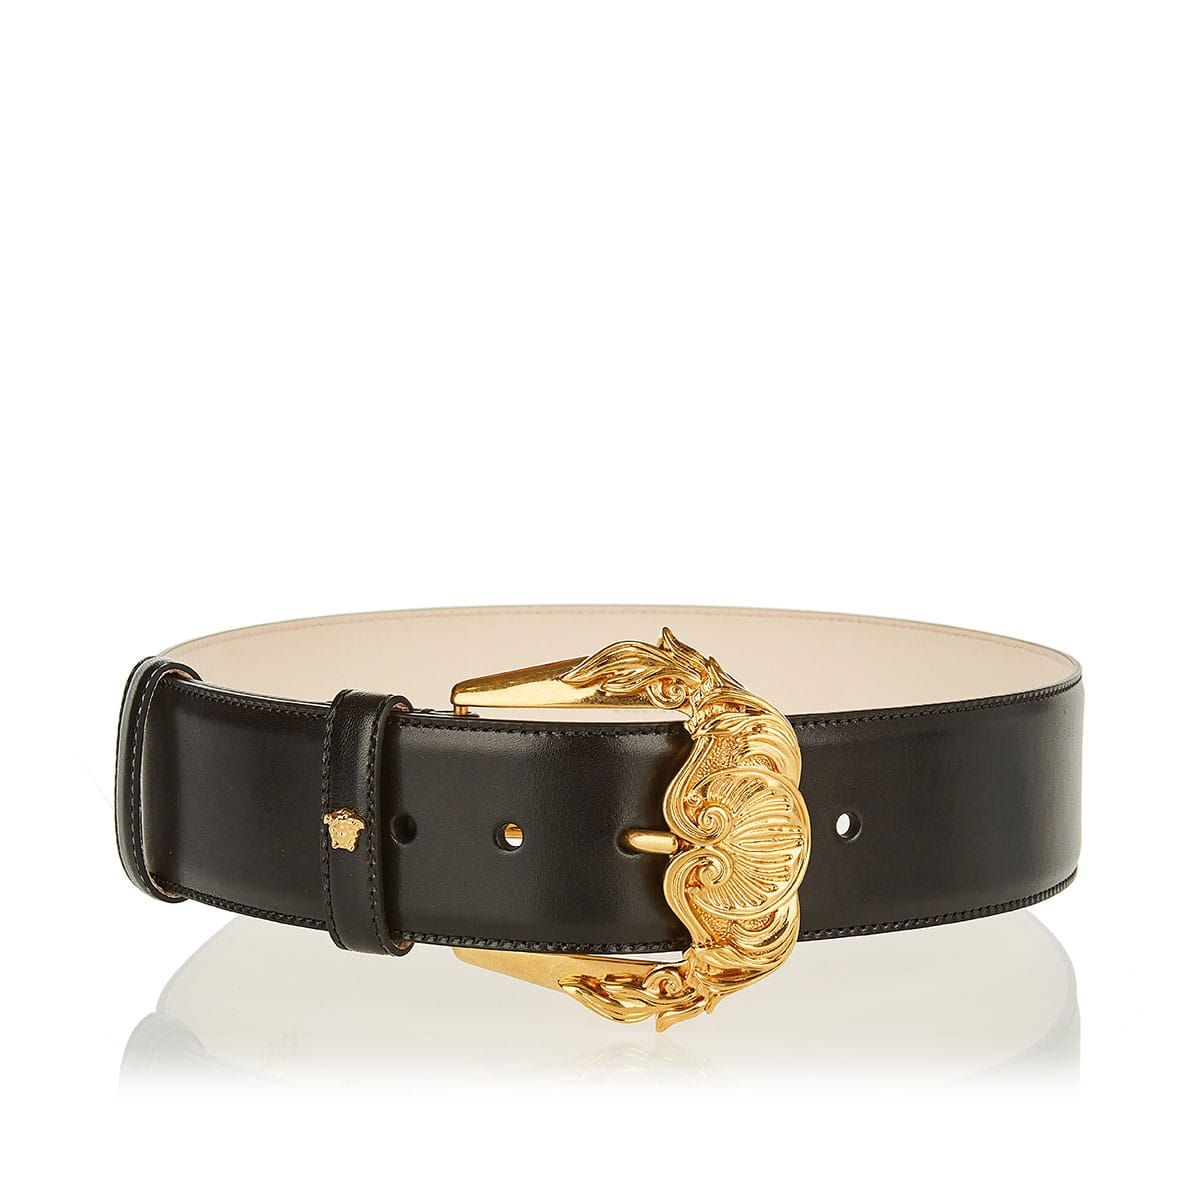 Barocco-buckle leather belt